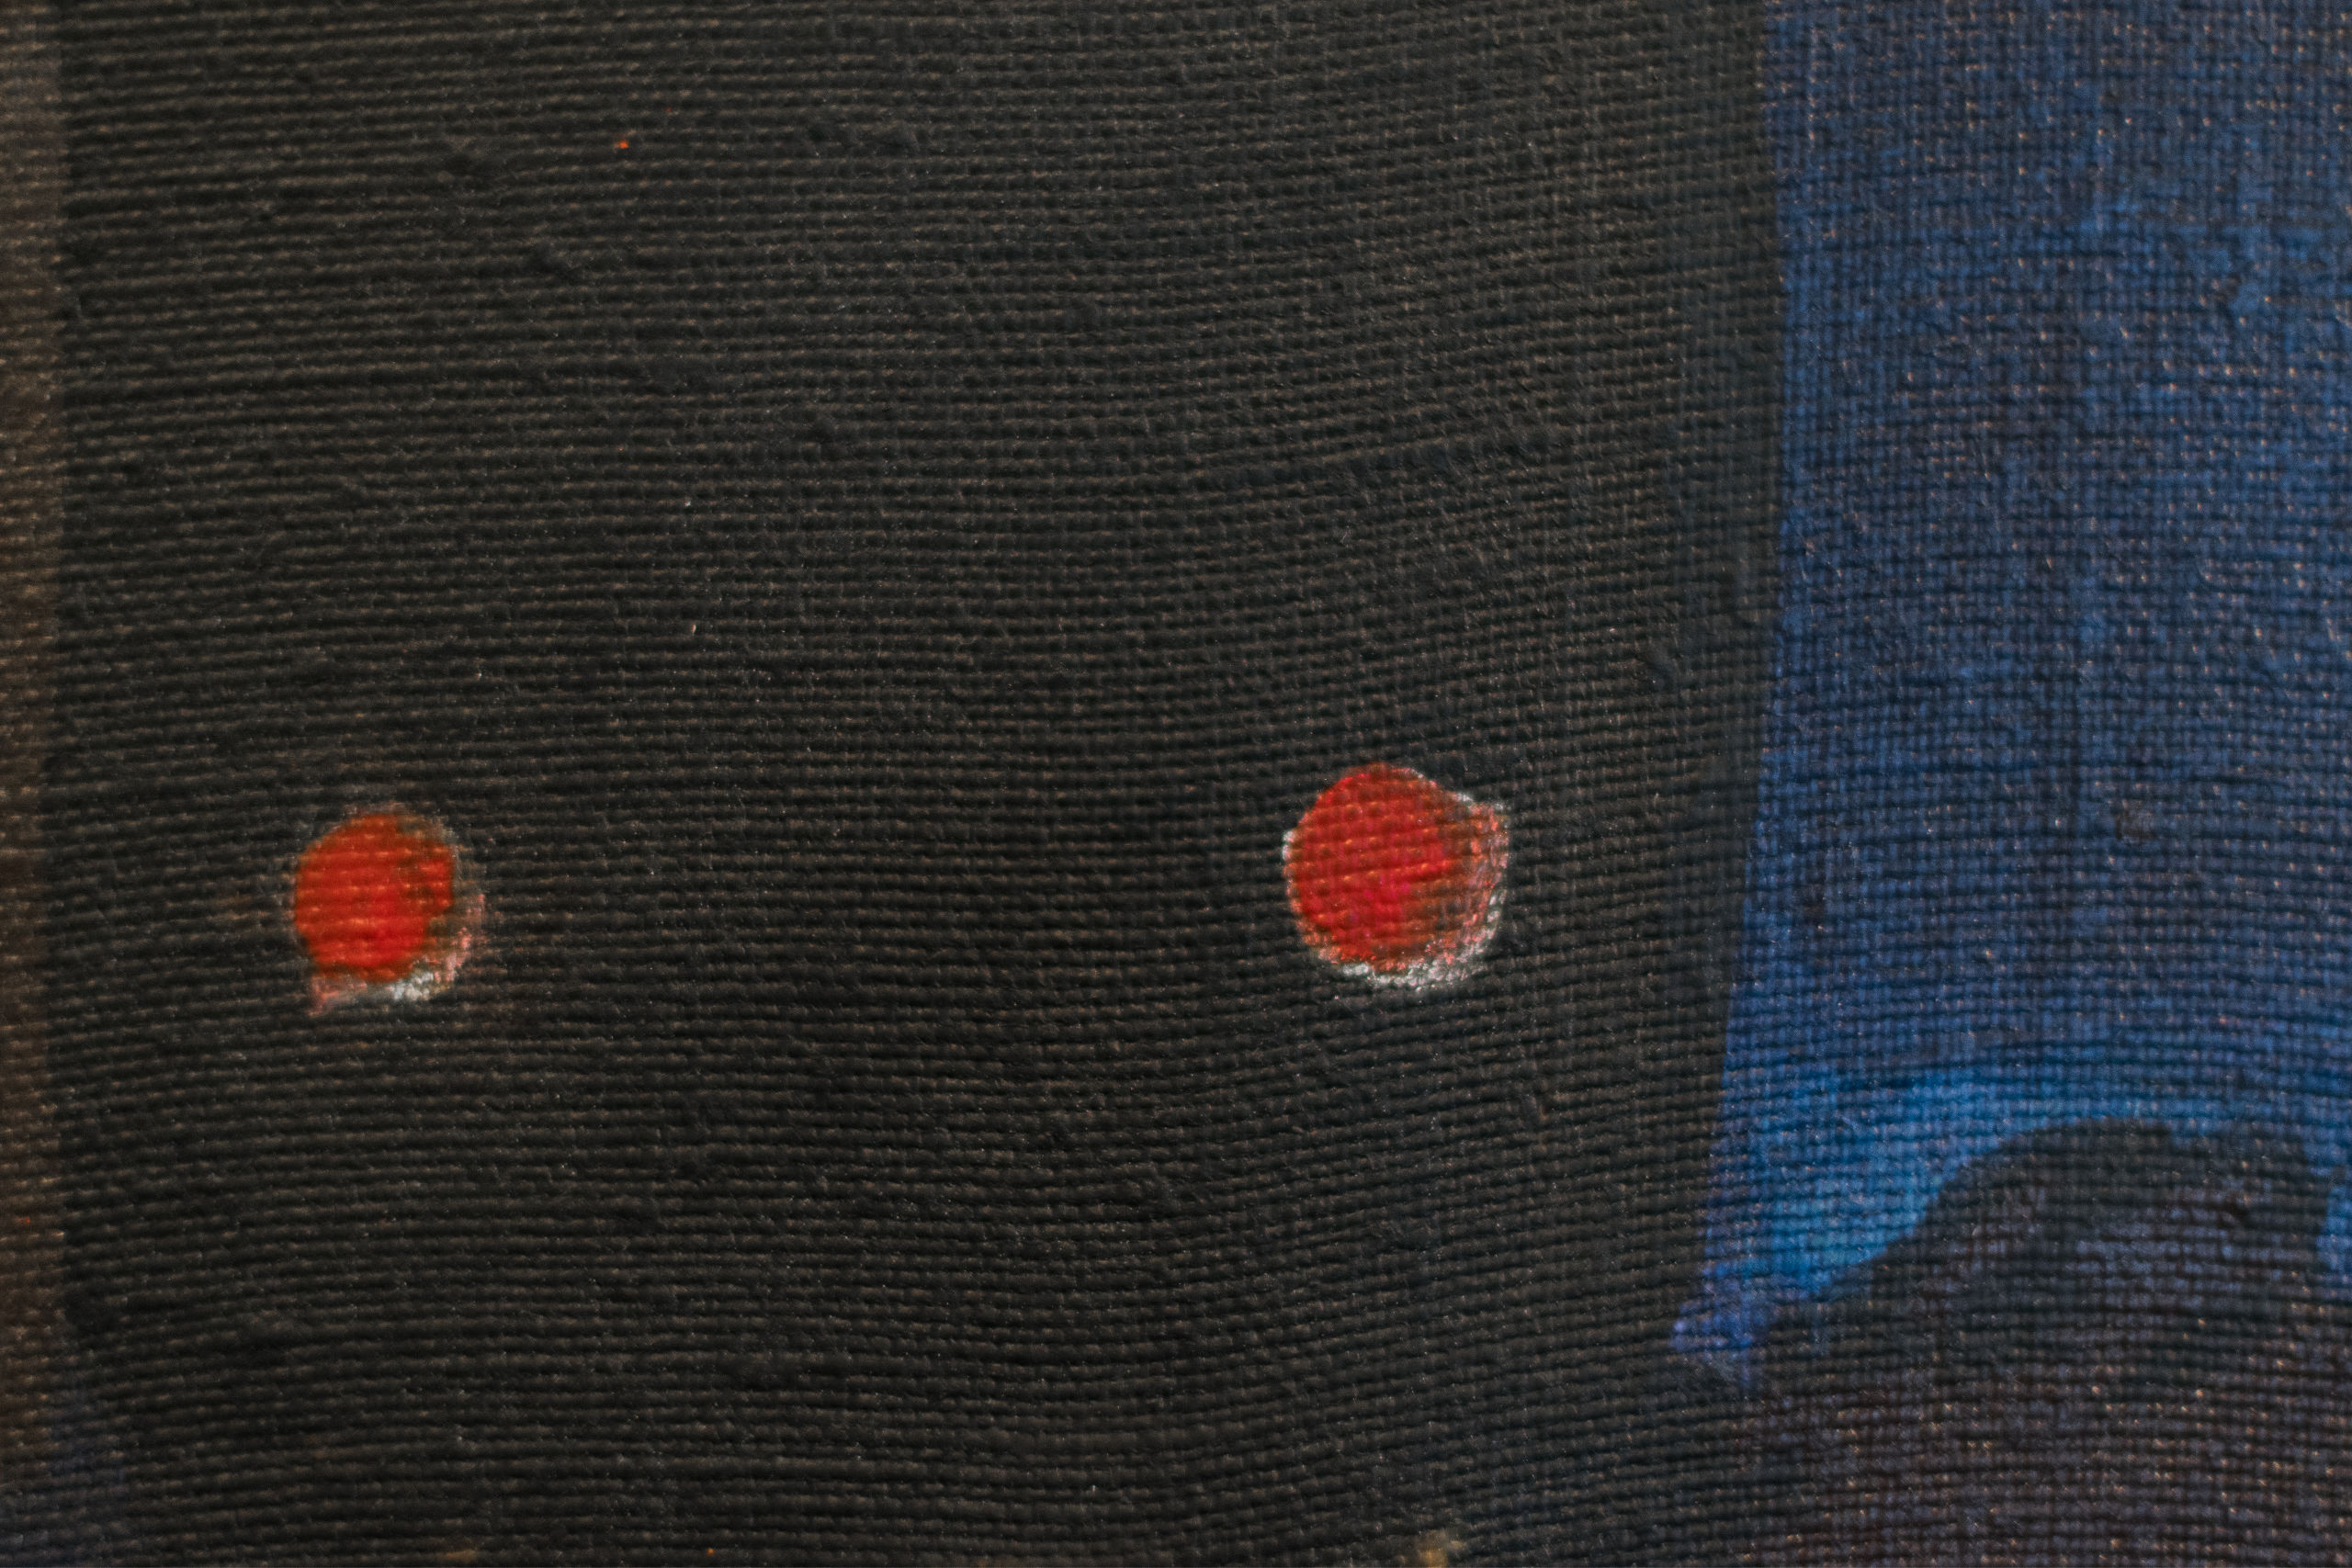 Close-up of painting showing black, blue and red tones.